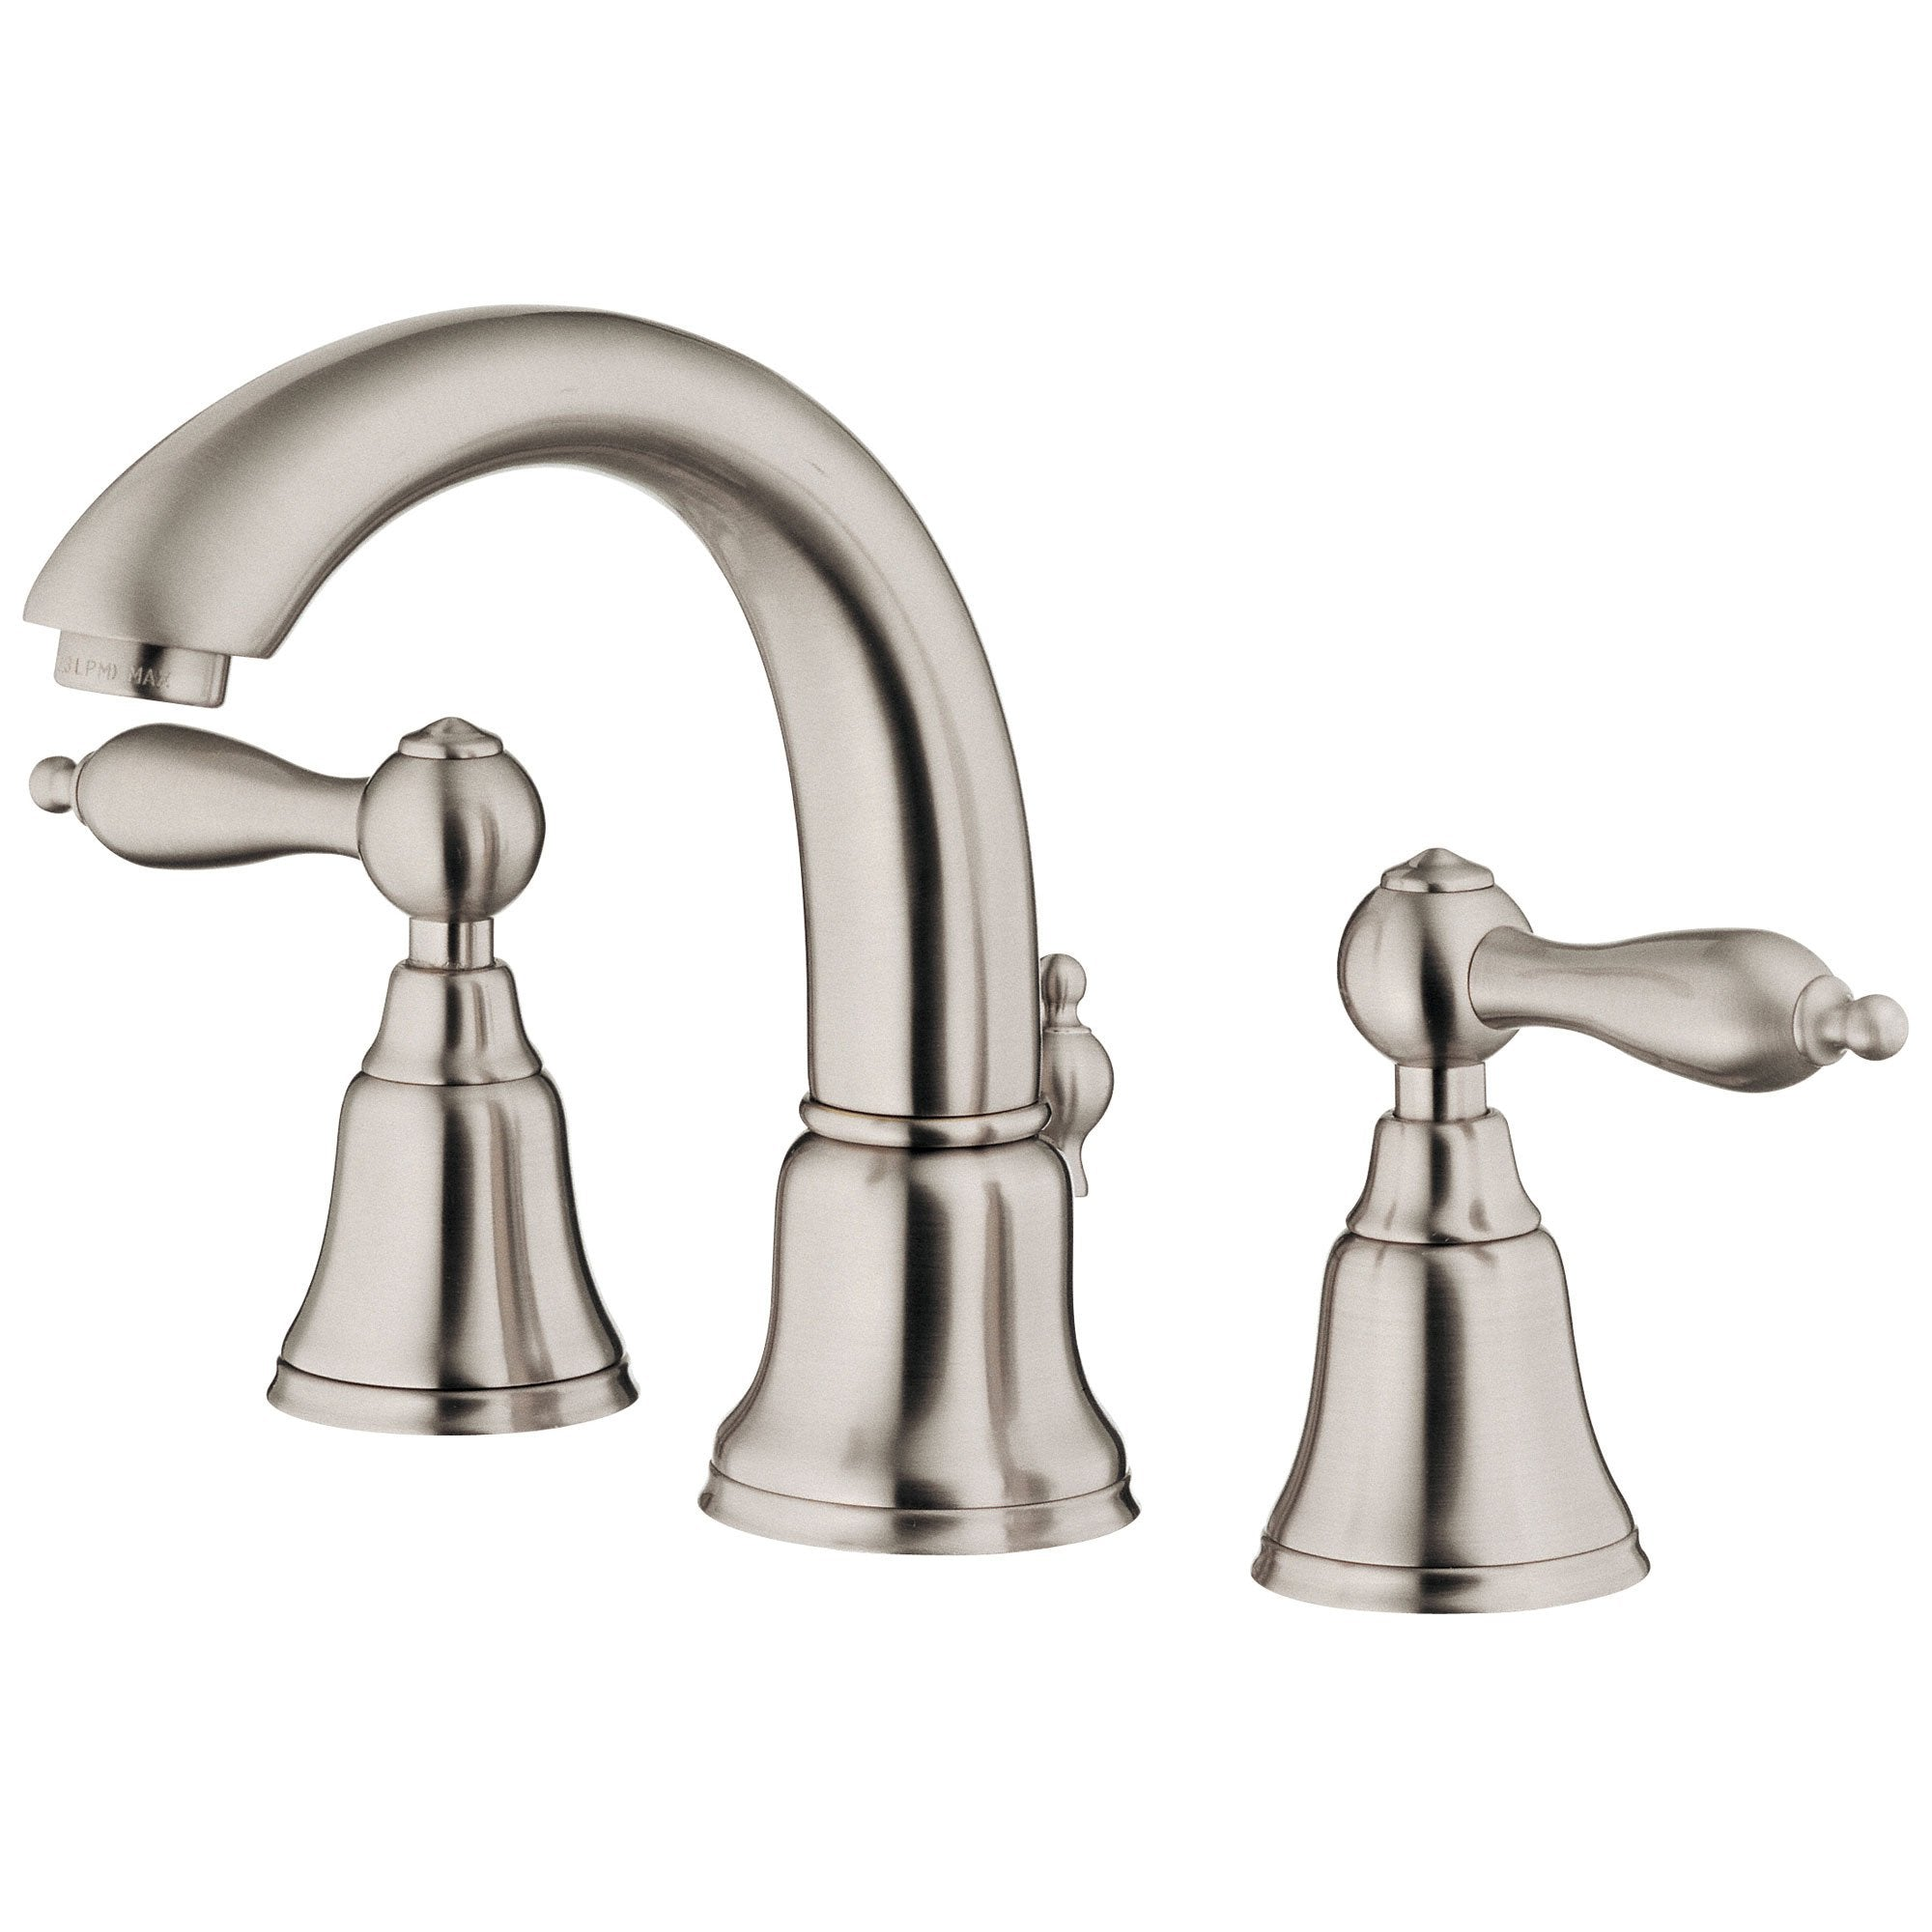 Danze Fairmont Brushed Nickel 2 Handle Mini-Widespread Bathroom Sink Faucet